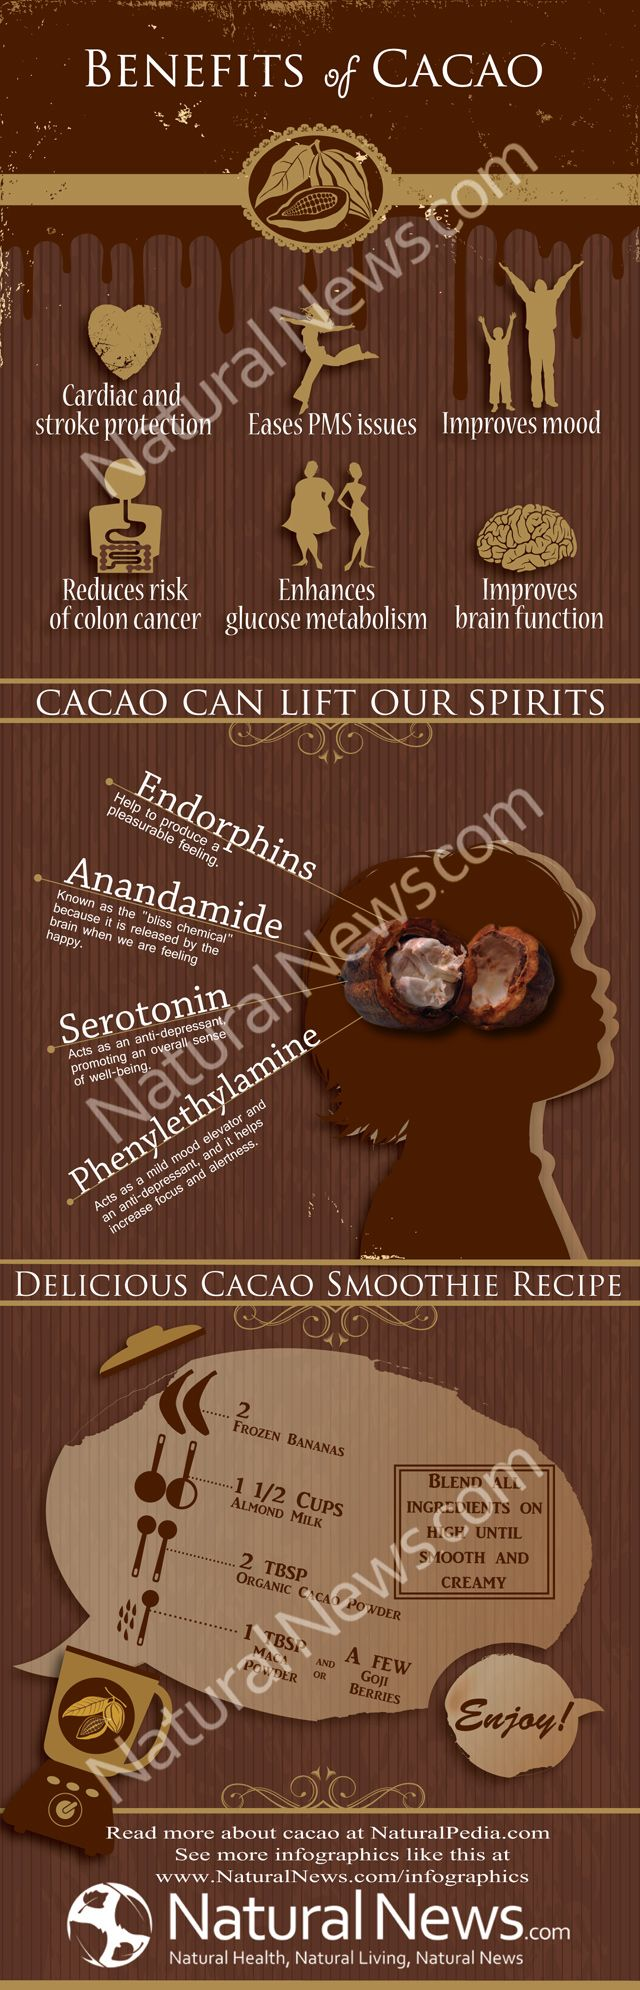 Cacao is indeed a superfood! Choffy is BREWED CHOCOLATE...100% premium cacao beans that have been roasted and ground so you can enjoy brew chocolate at home. Get yours today at drinkchoffy.com/verdespa